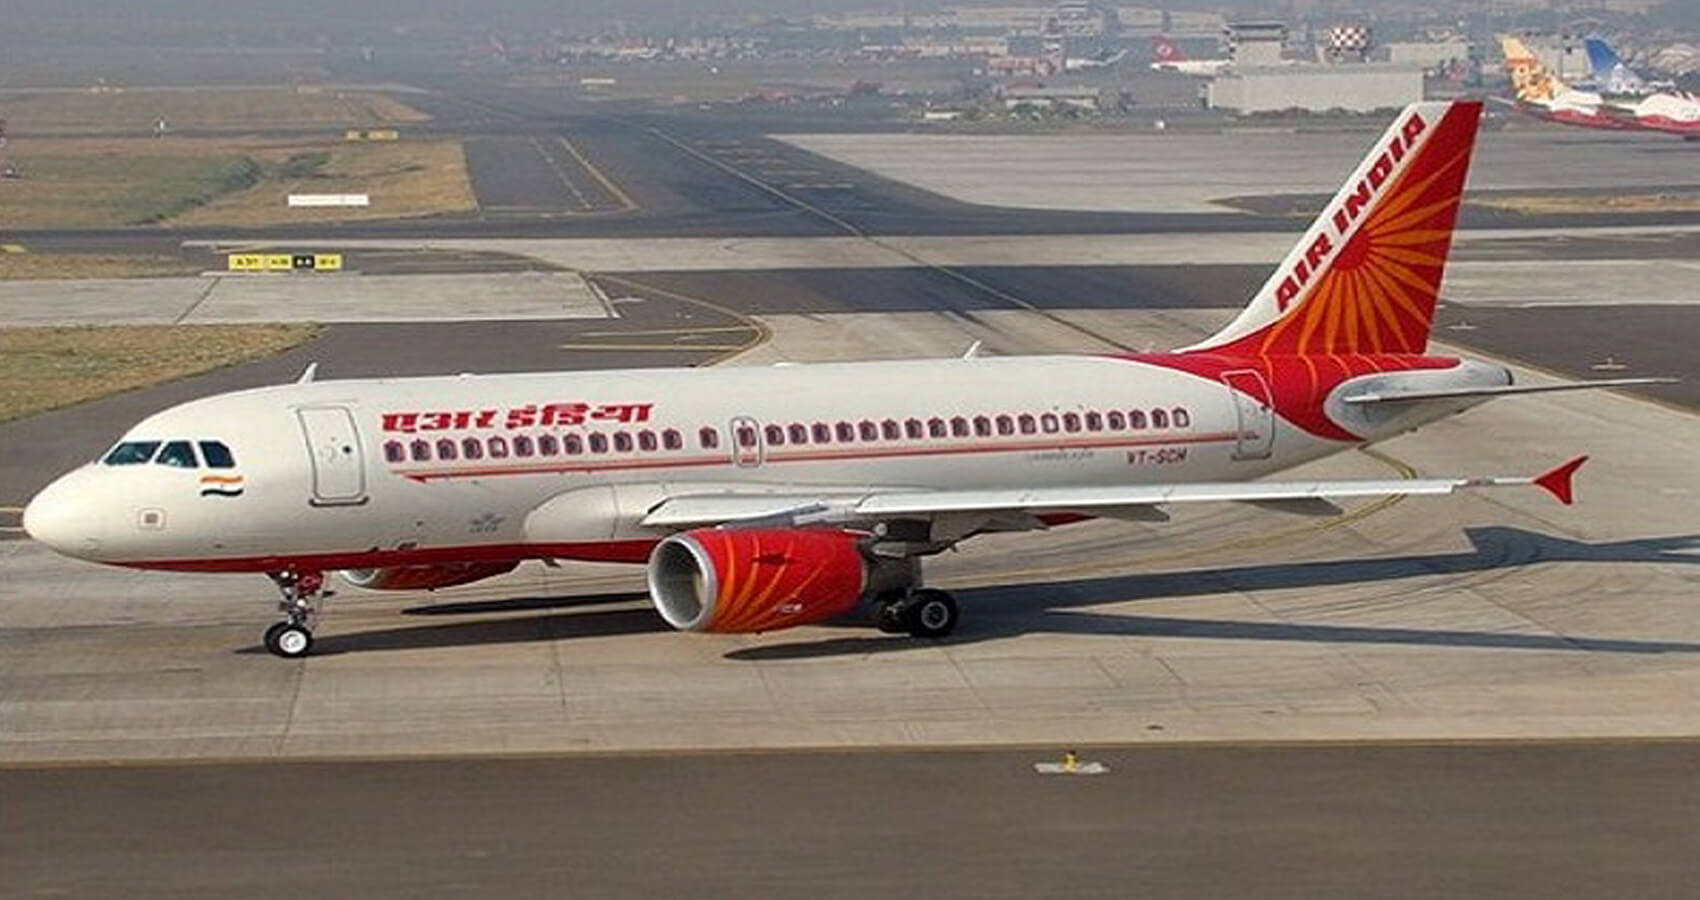 Air India To Begin Flights From Bengaluru To San Francisco Starting Jan 2021